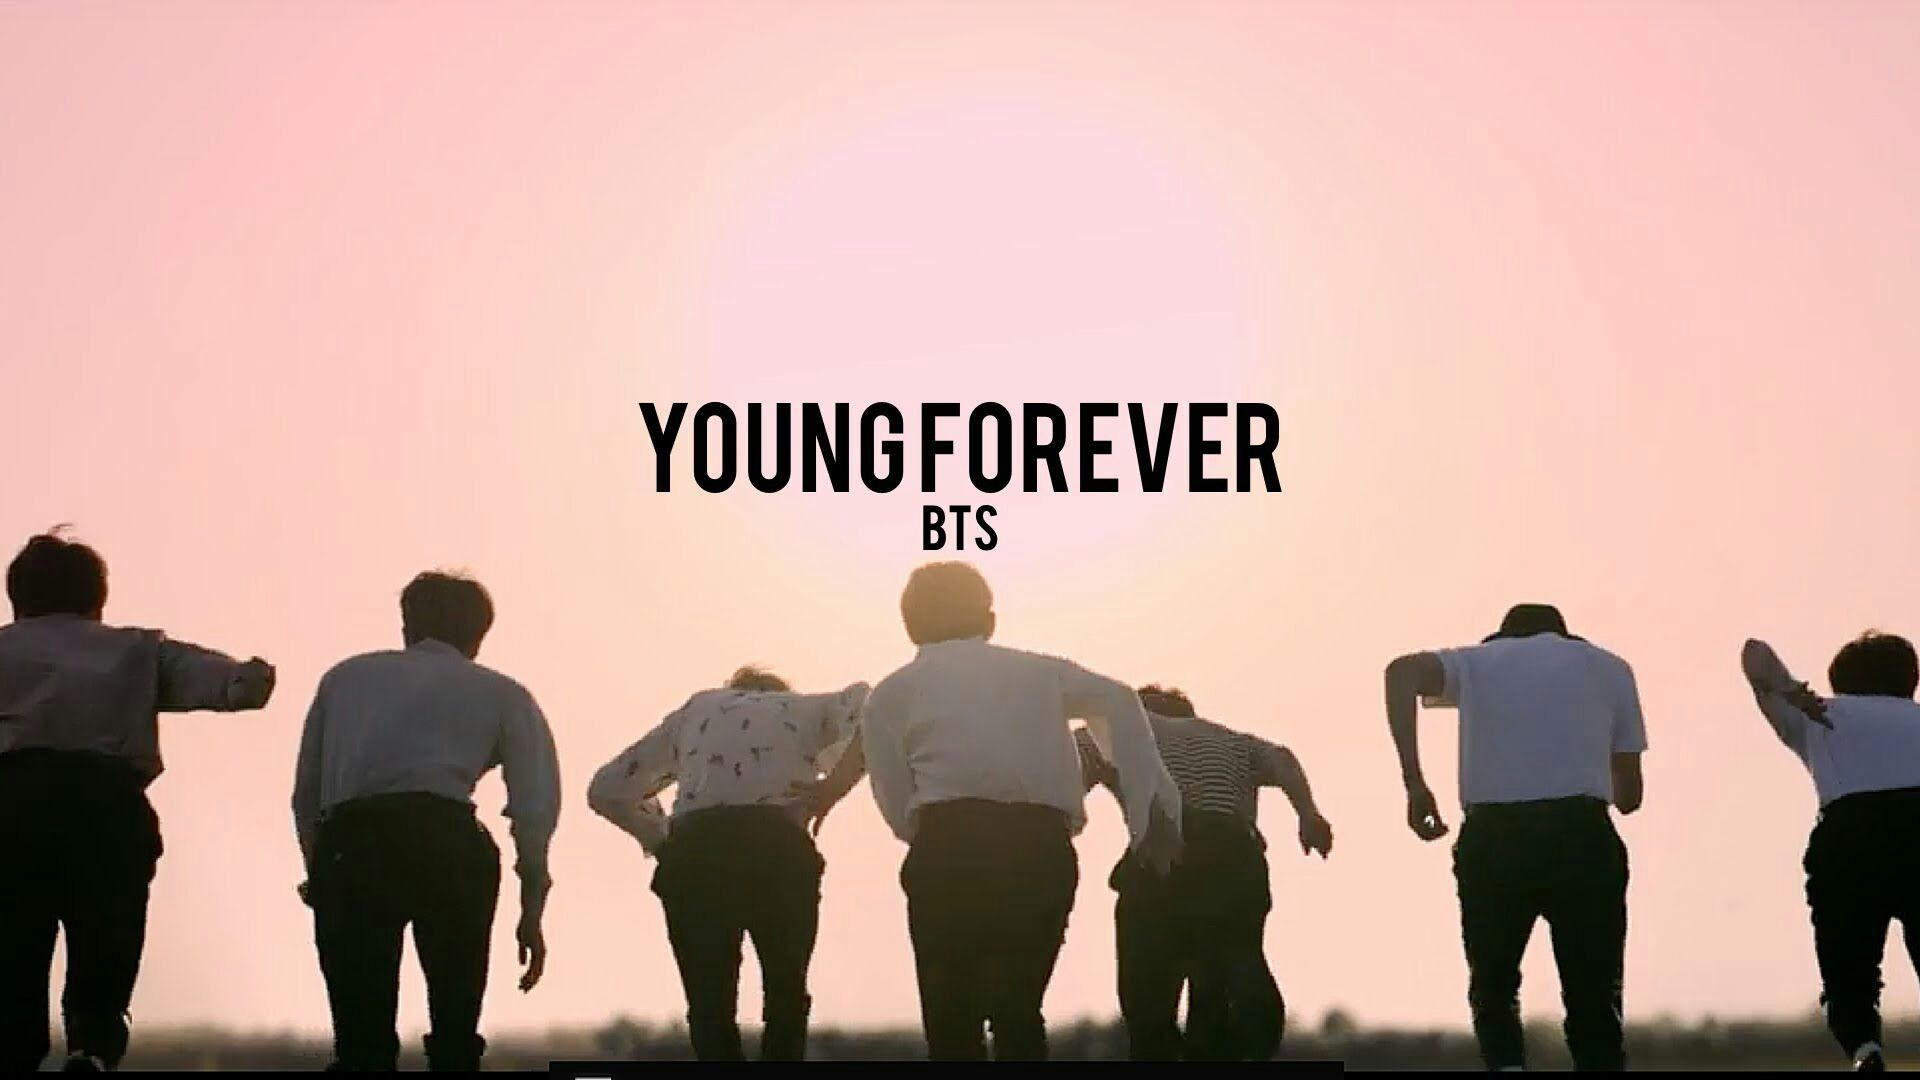 Pin By Elanie Suquilanda On Bts Bts Wings Wallpaper Bts Young Forever Bts Wallpaper